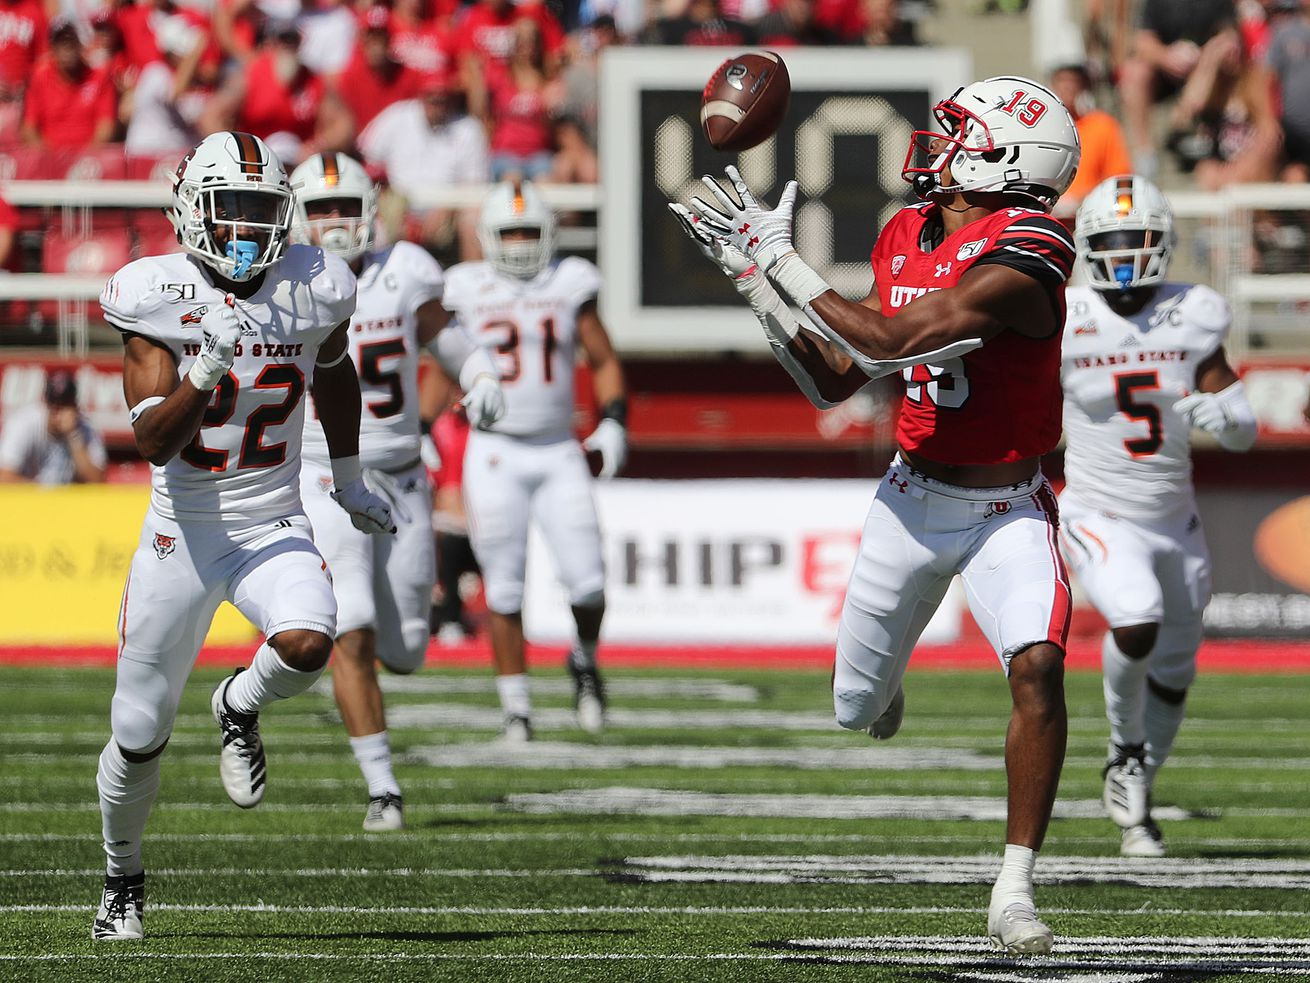 Healthy again, Ute receiver Bryan Thompson looking forward to playing in his old neighborhood at USC